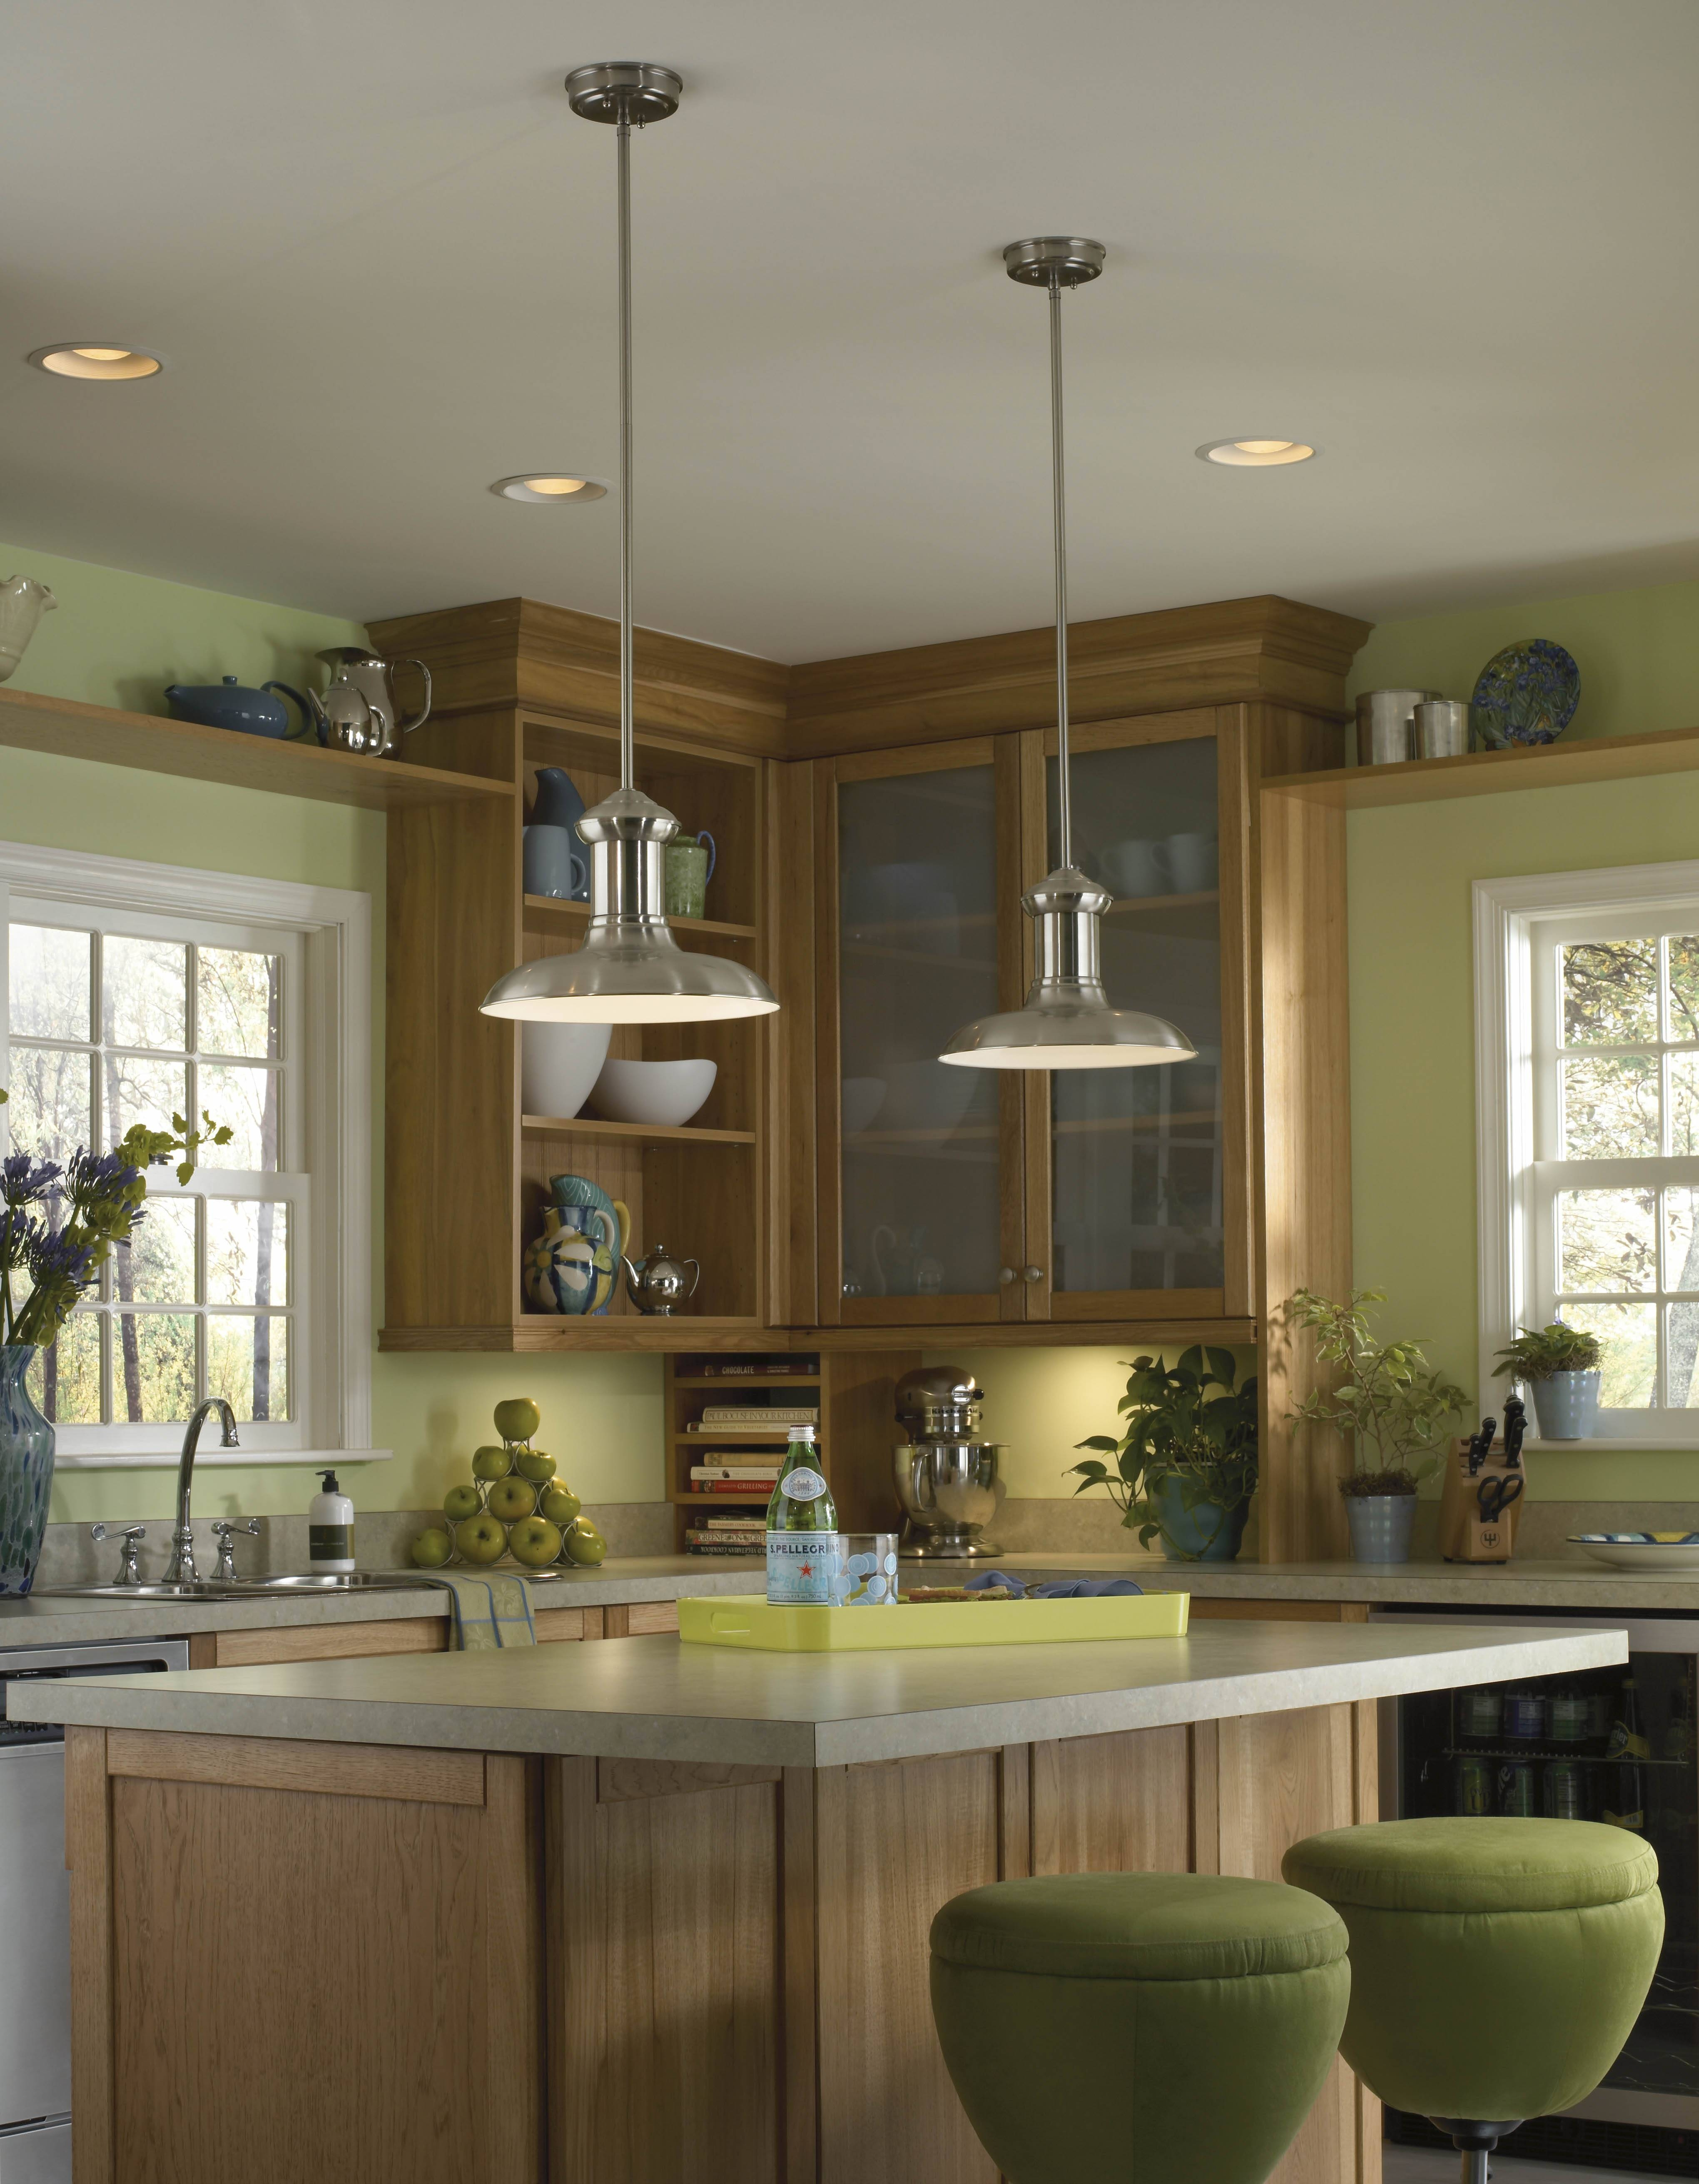 Good Mini Pendant Light Fixtures For Kitchen 49 On Stainless Steel intended for Stainless Steel Kitchen Pendant Lights (Image 2 of 15)